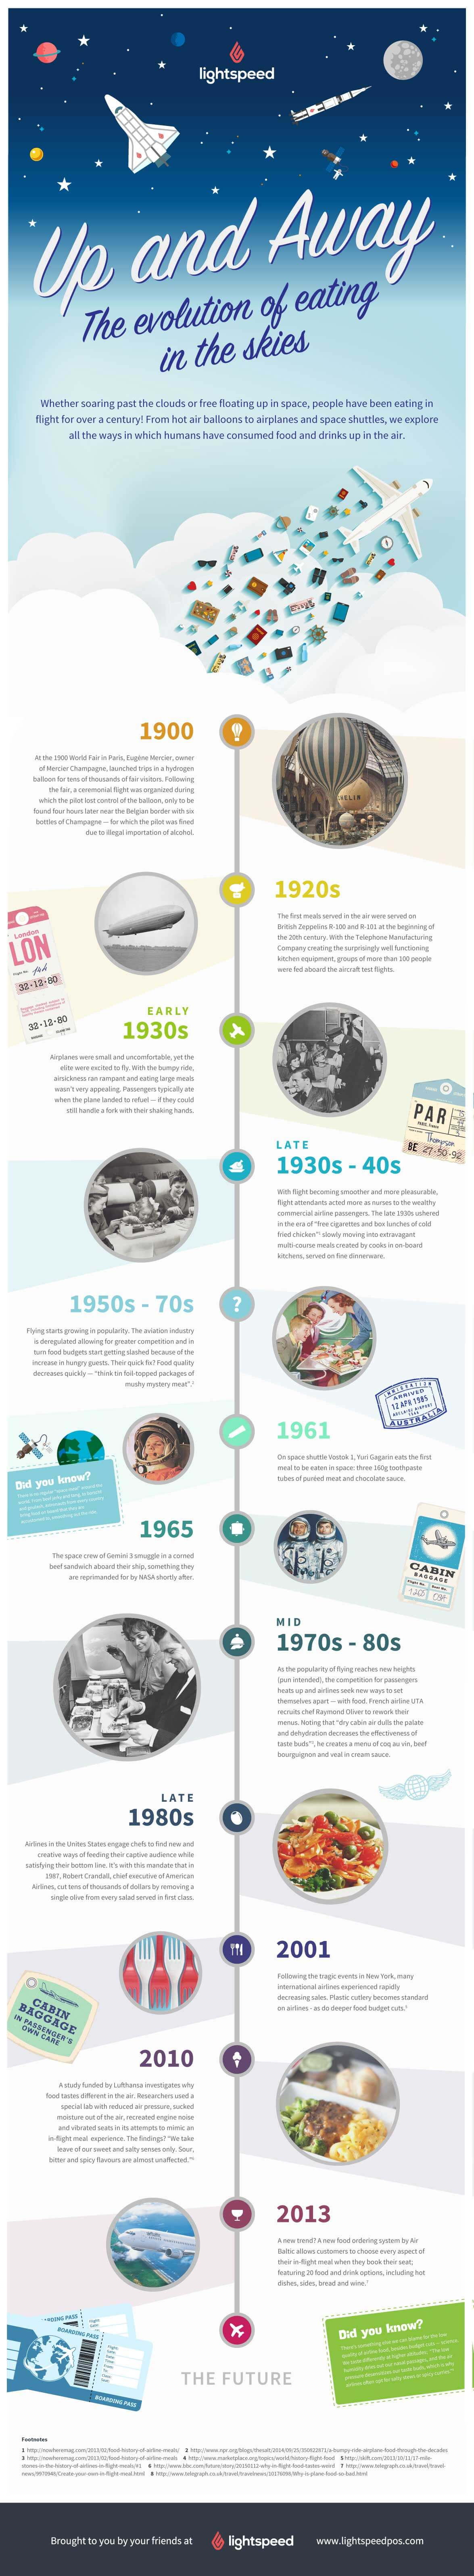 Infographic history of airline and space food